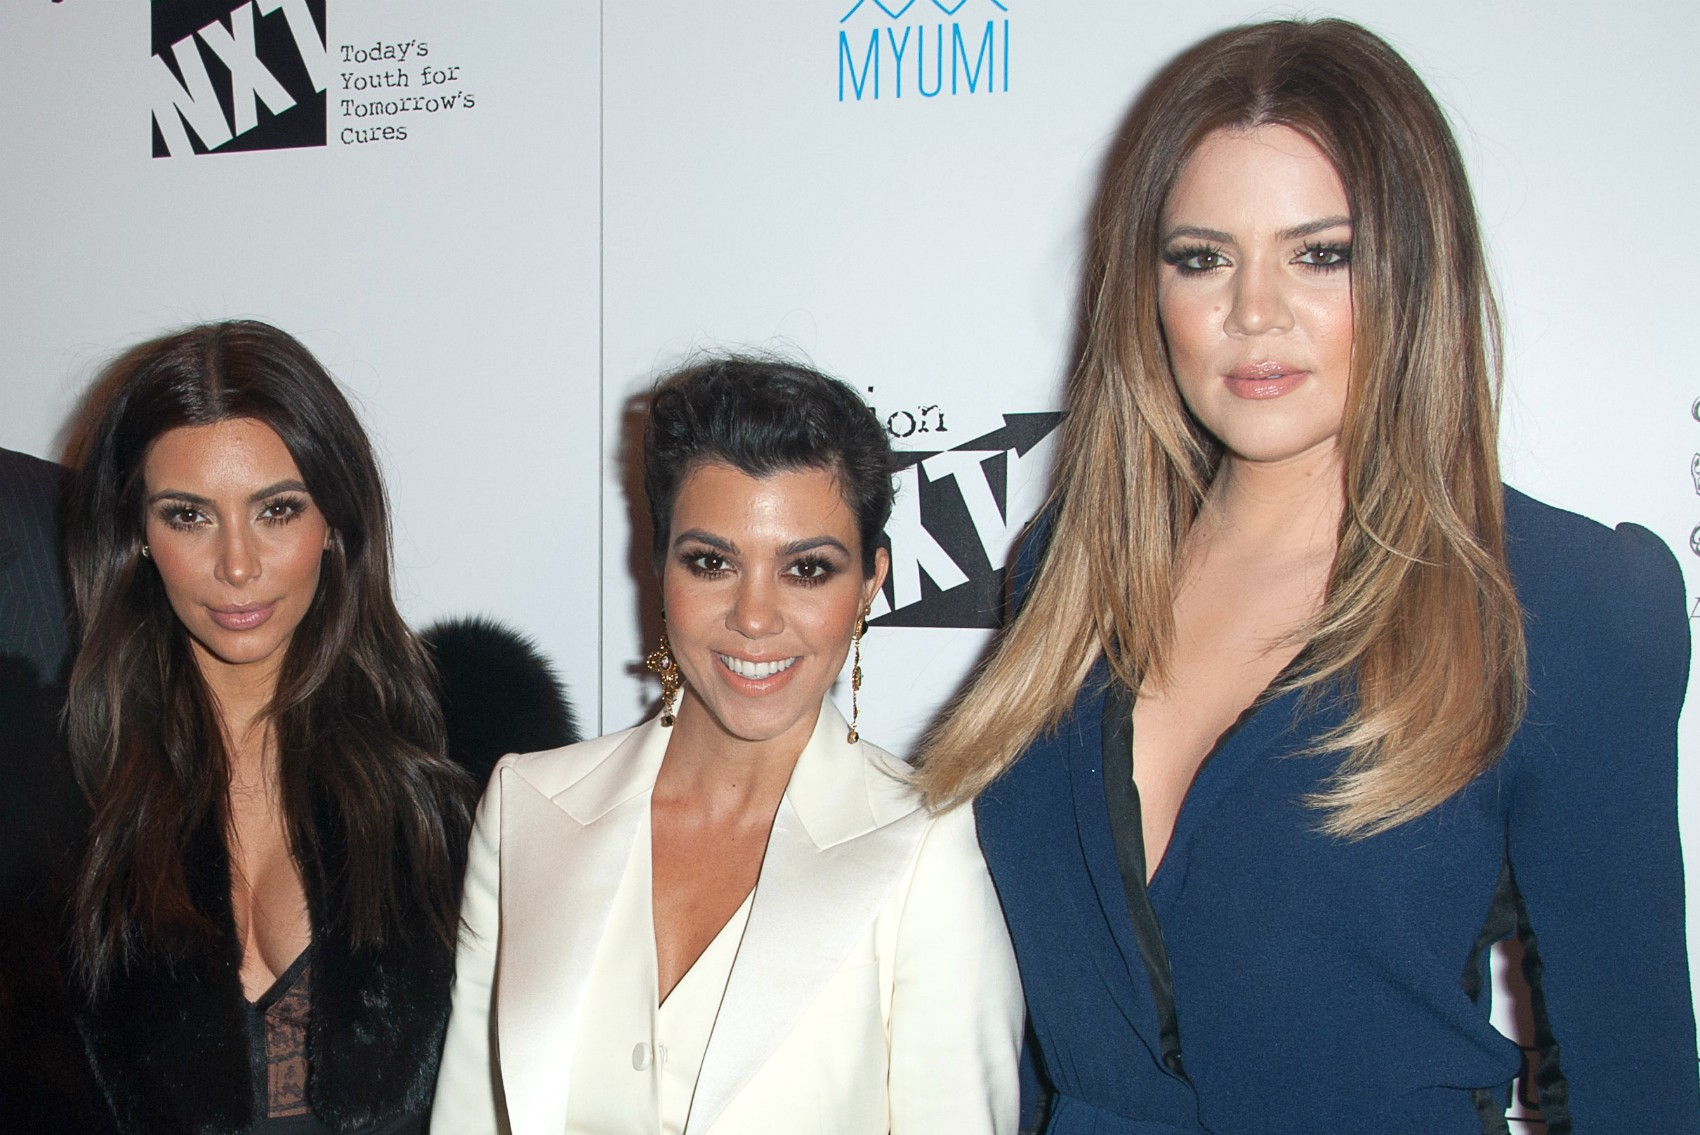 "O ""trio parada dura"" do momento: Kim (à esq.), Kourtney (centro) e Khloé Kardashian. As estrelas do reality 'Keeping Up With The Kardashians' têm, respectivamente, 33, 35 e 30 anos de idade. (Foto: Getty Images)"